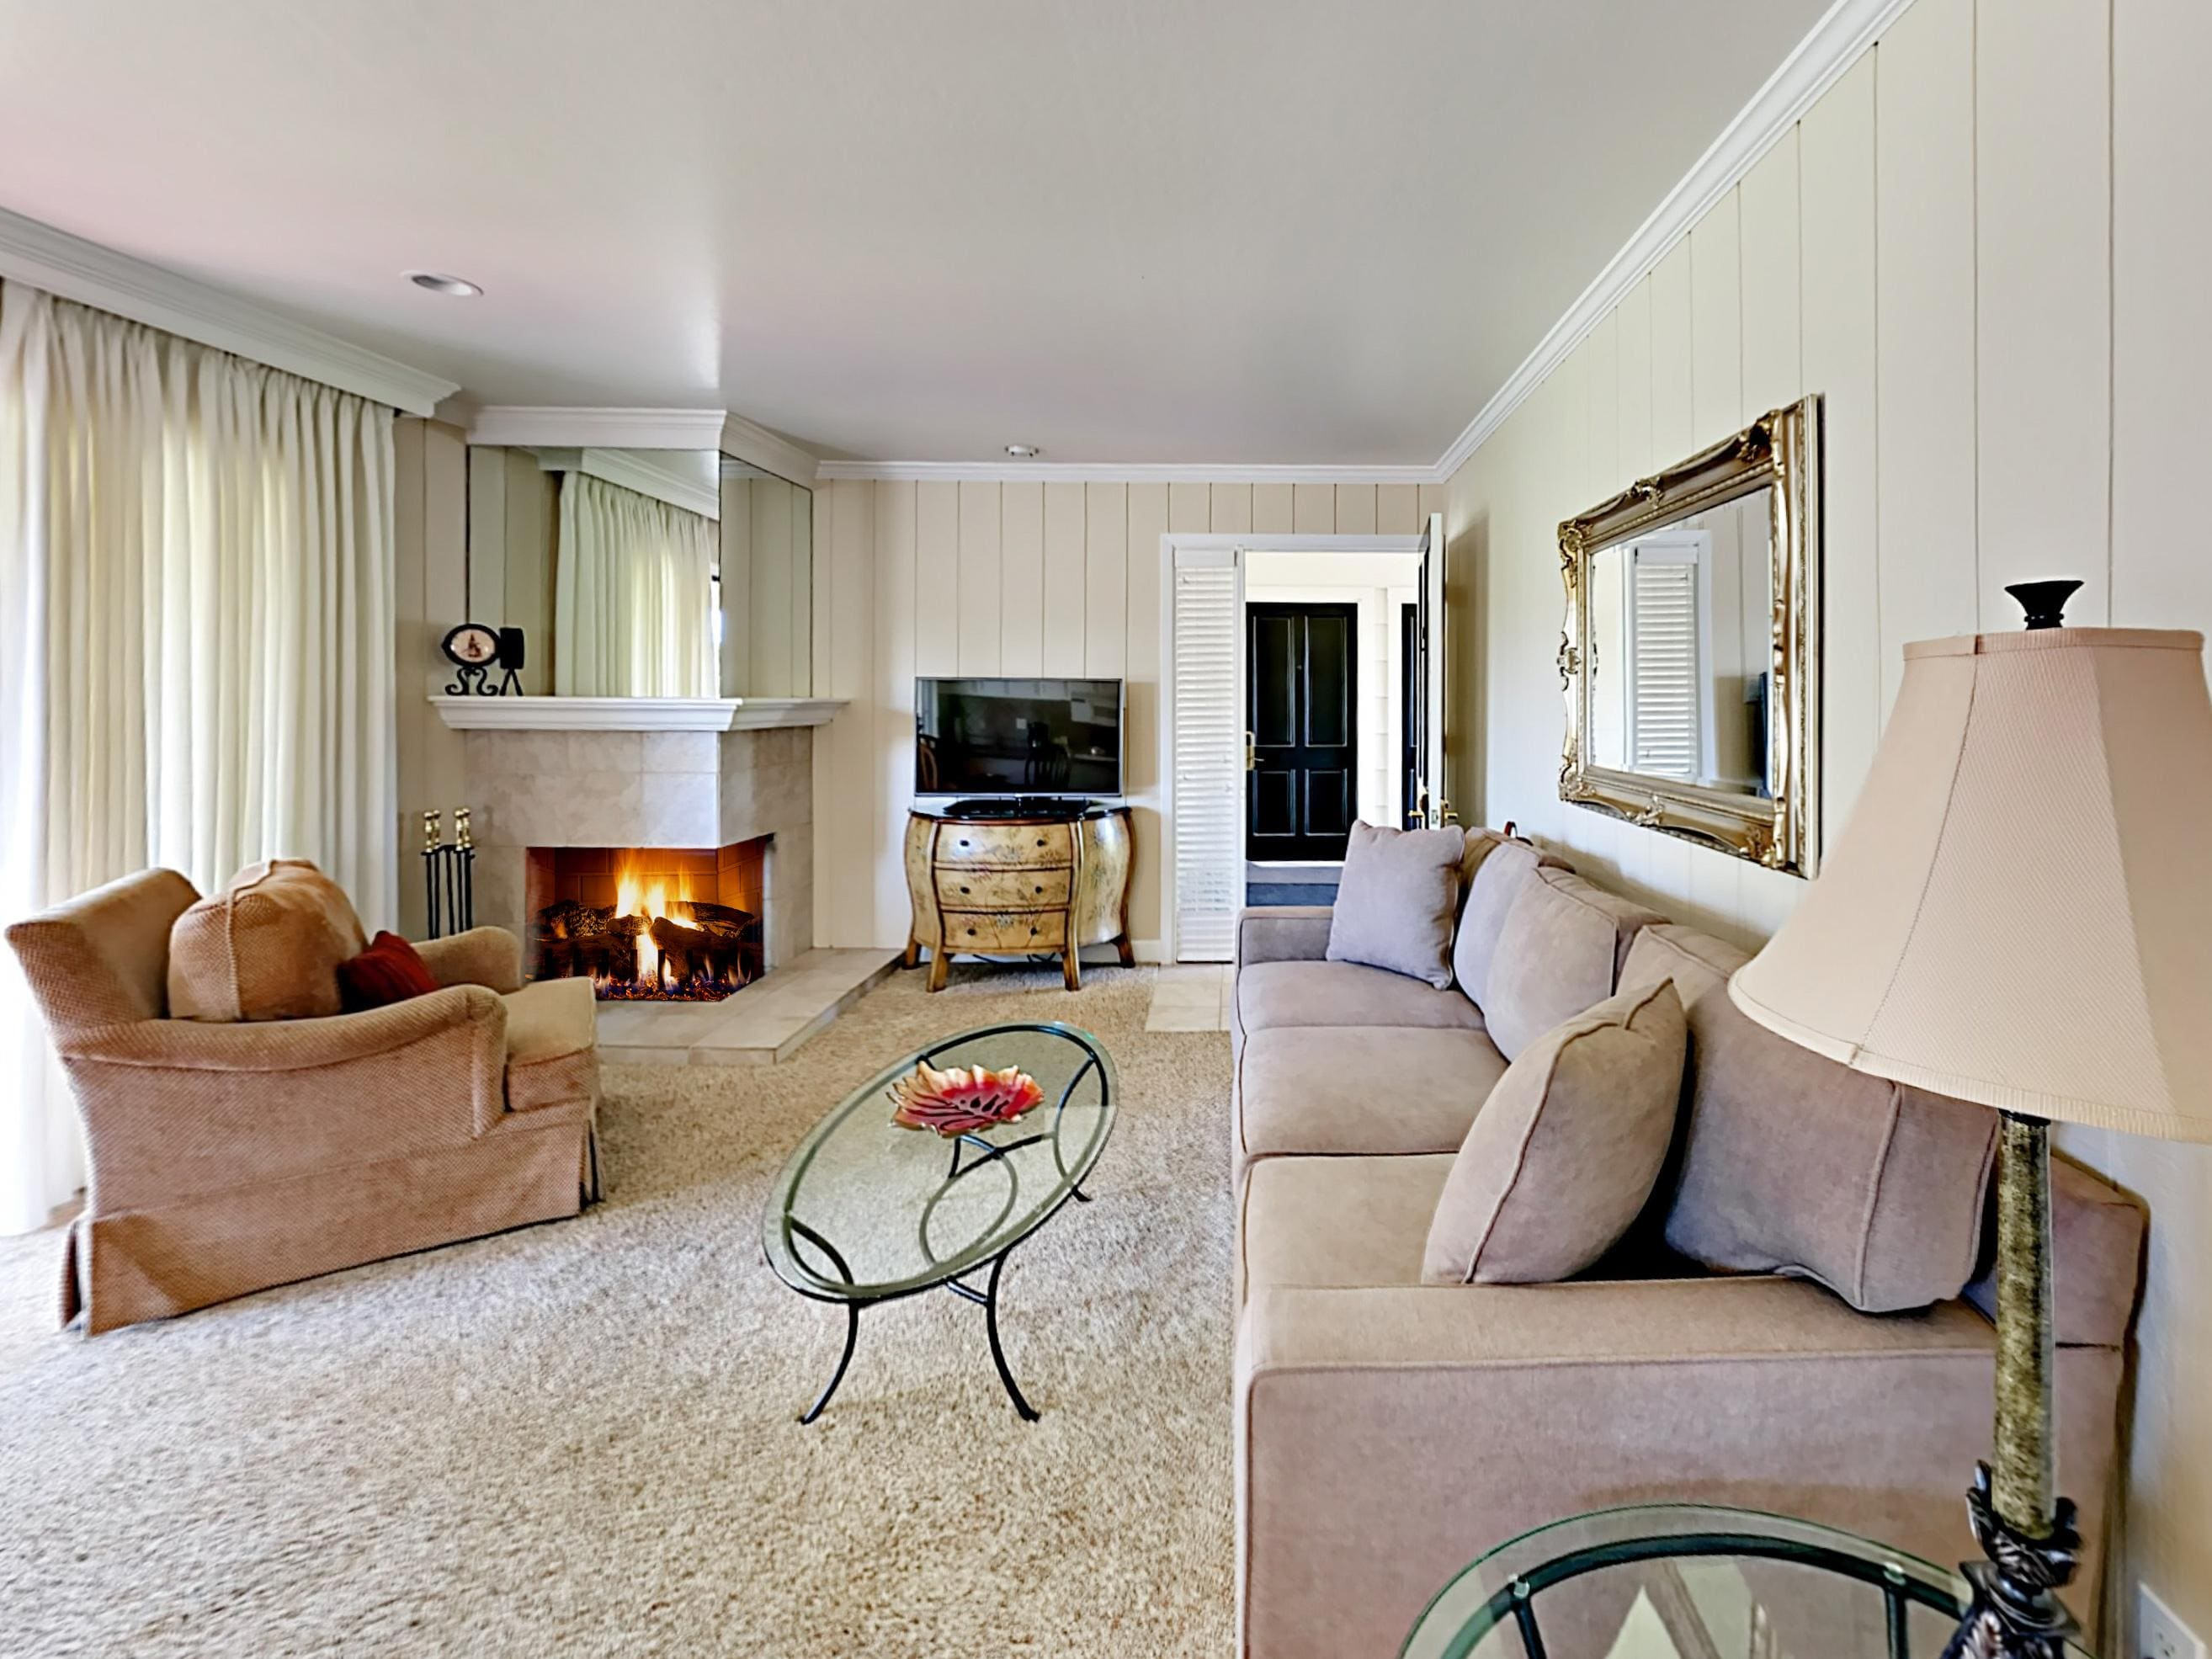 Welcome to Napa Valley! Relax on a sofa and armchair while the fireplace warms the space.